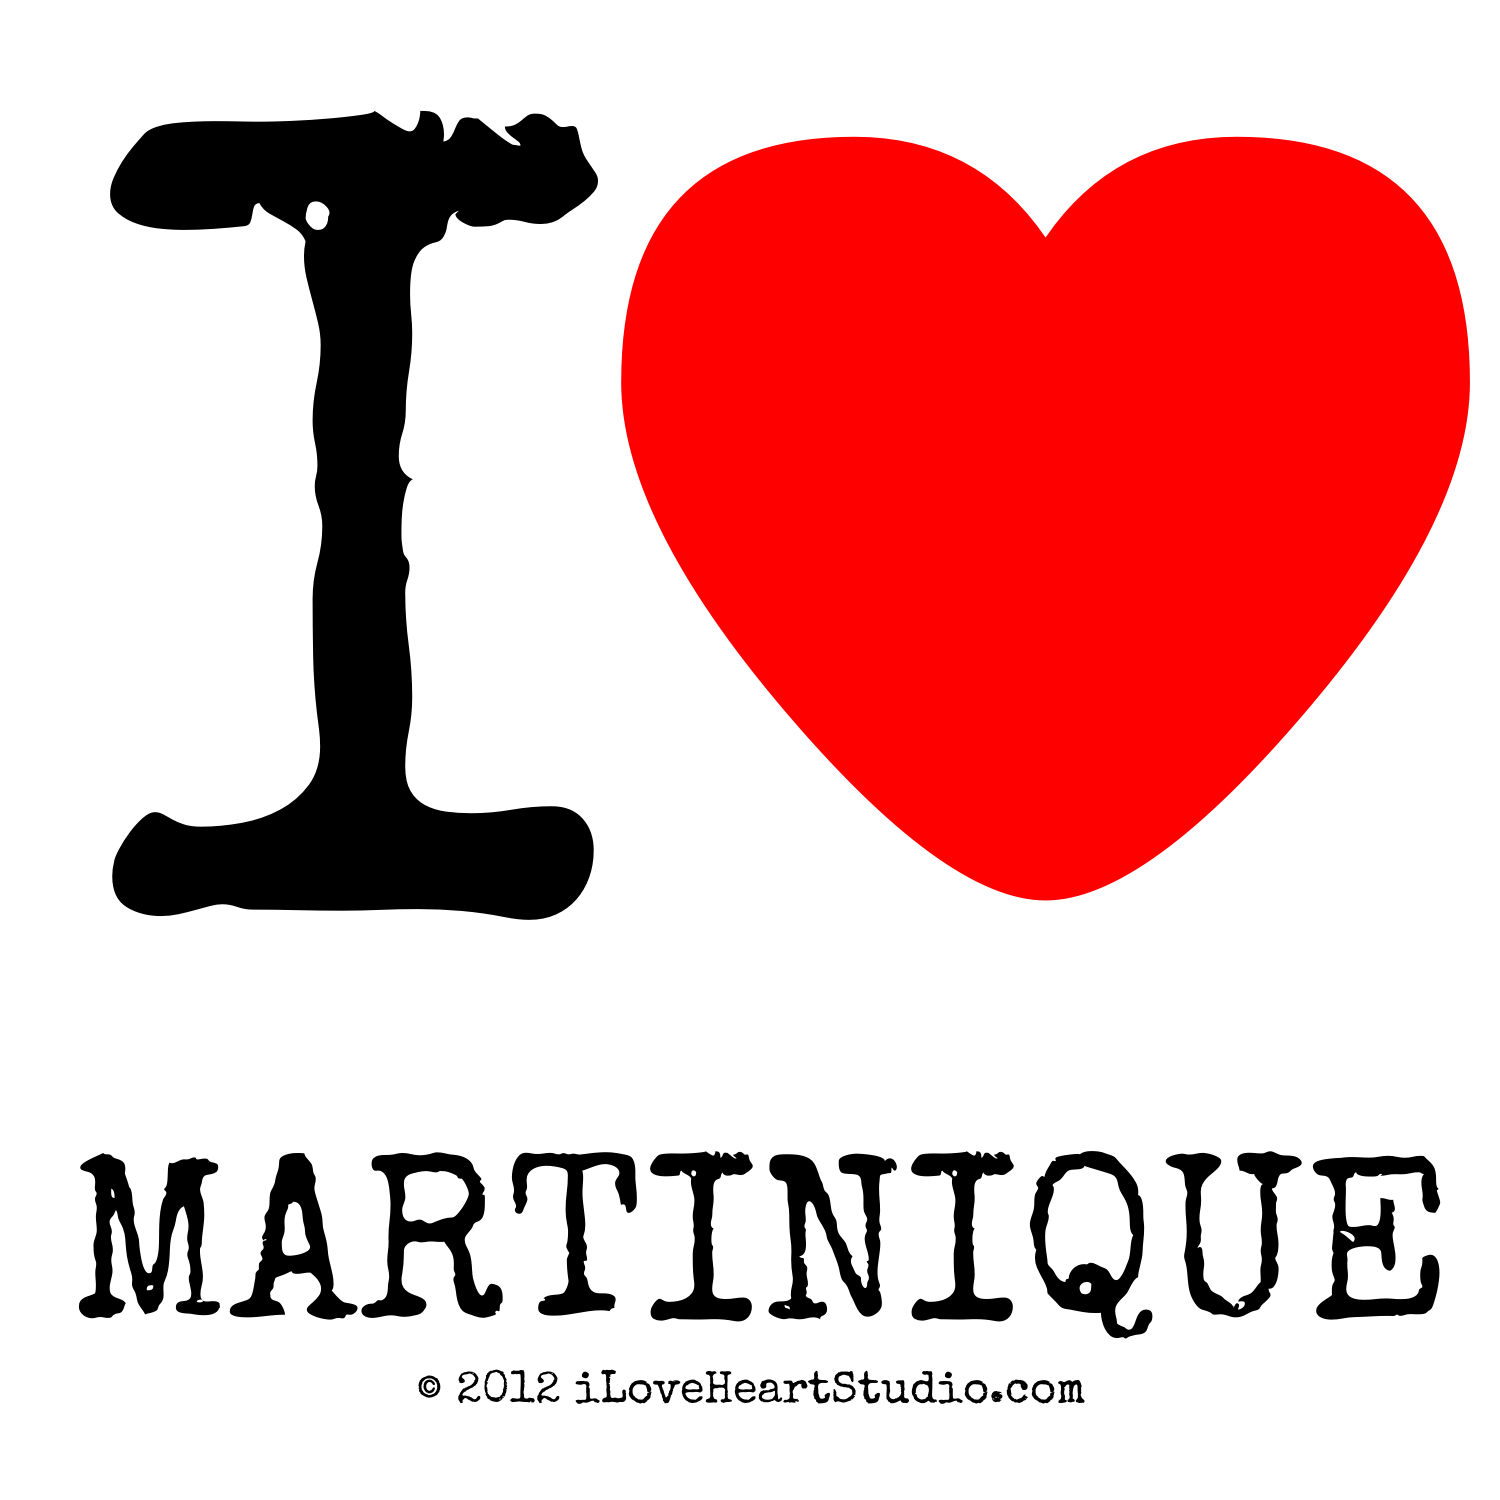 I Love Heart Martinique Design On Poster Mug T Shirt And